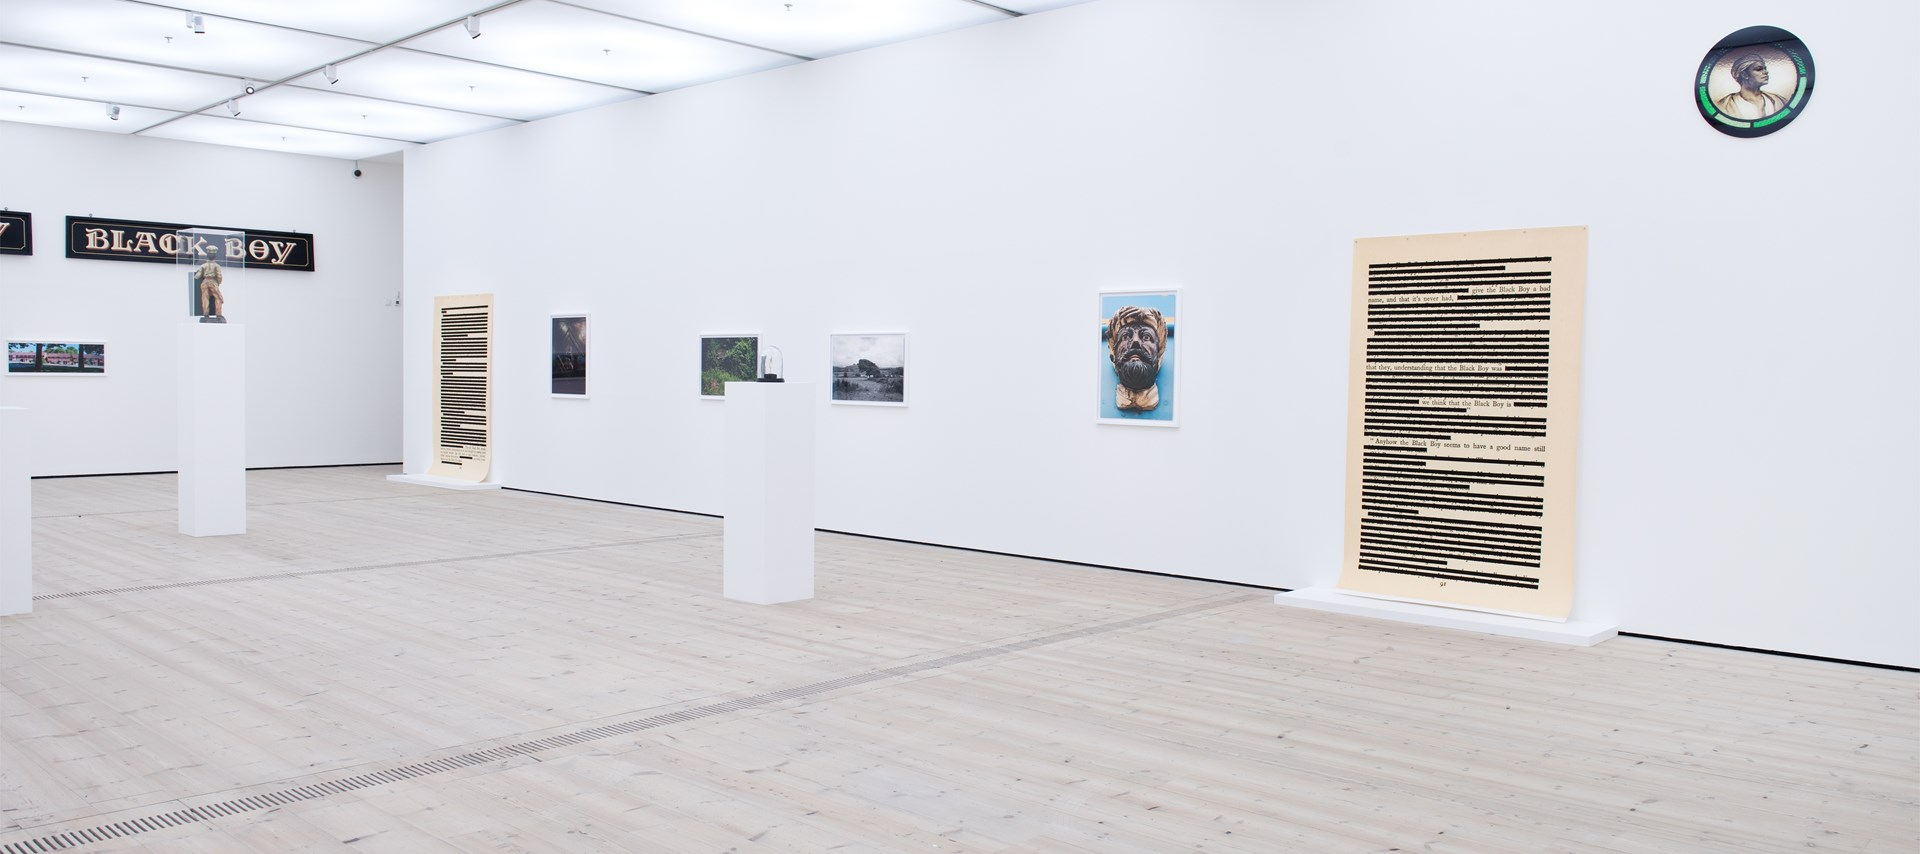 BALTIC Artists' Award 2019: Ingrid Pollard: Installation View. Image: Colin Davison. © BALTIC.